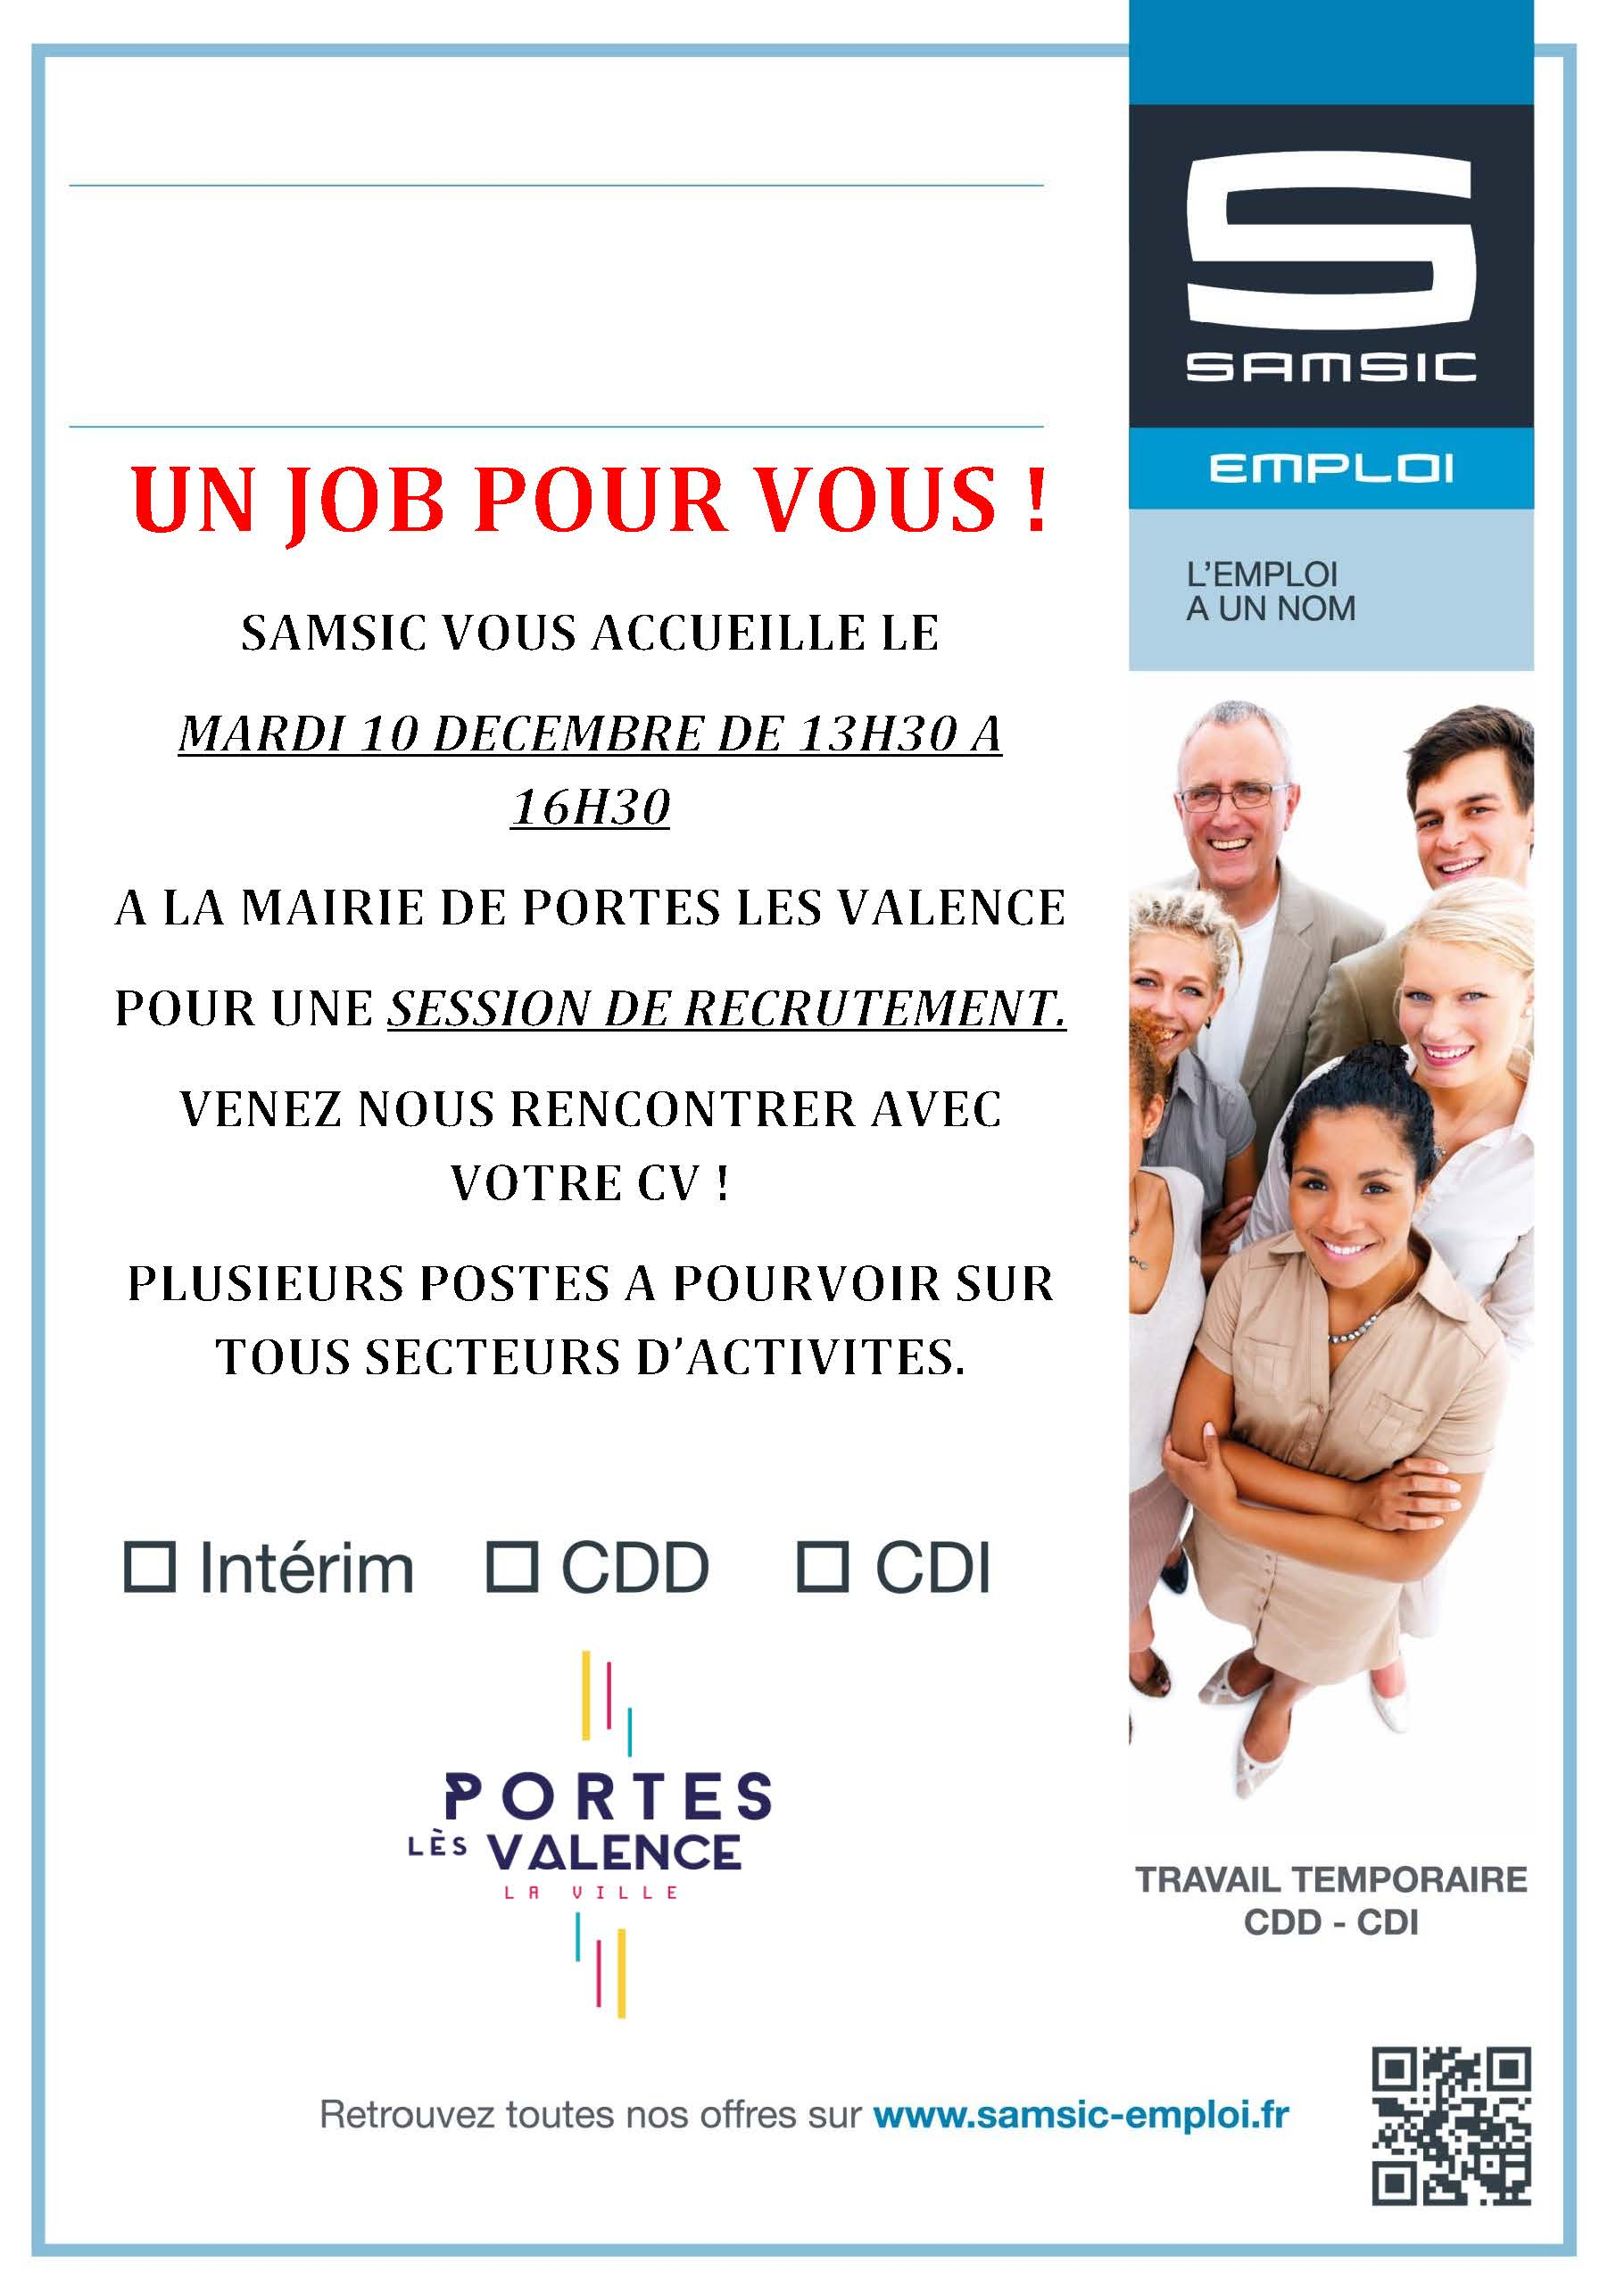 Job dating Samsic emploi